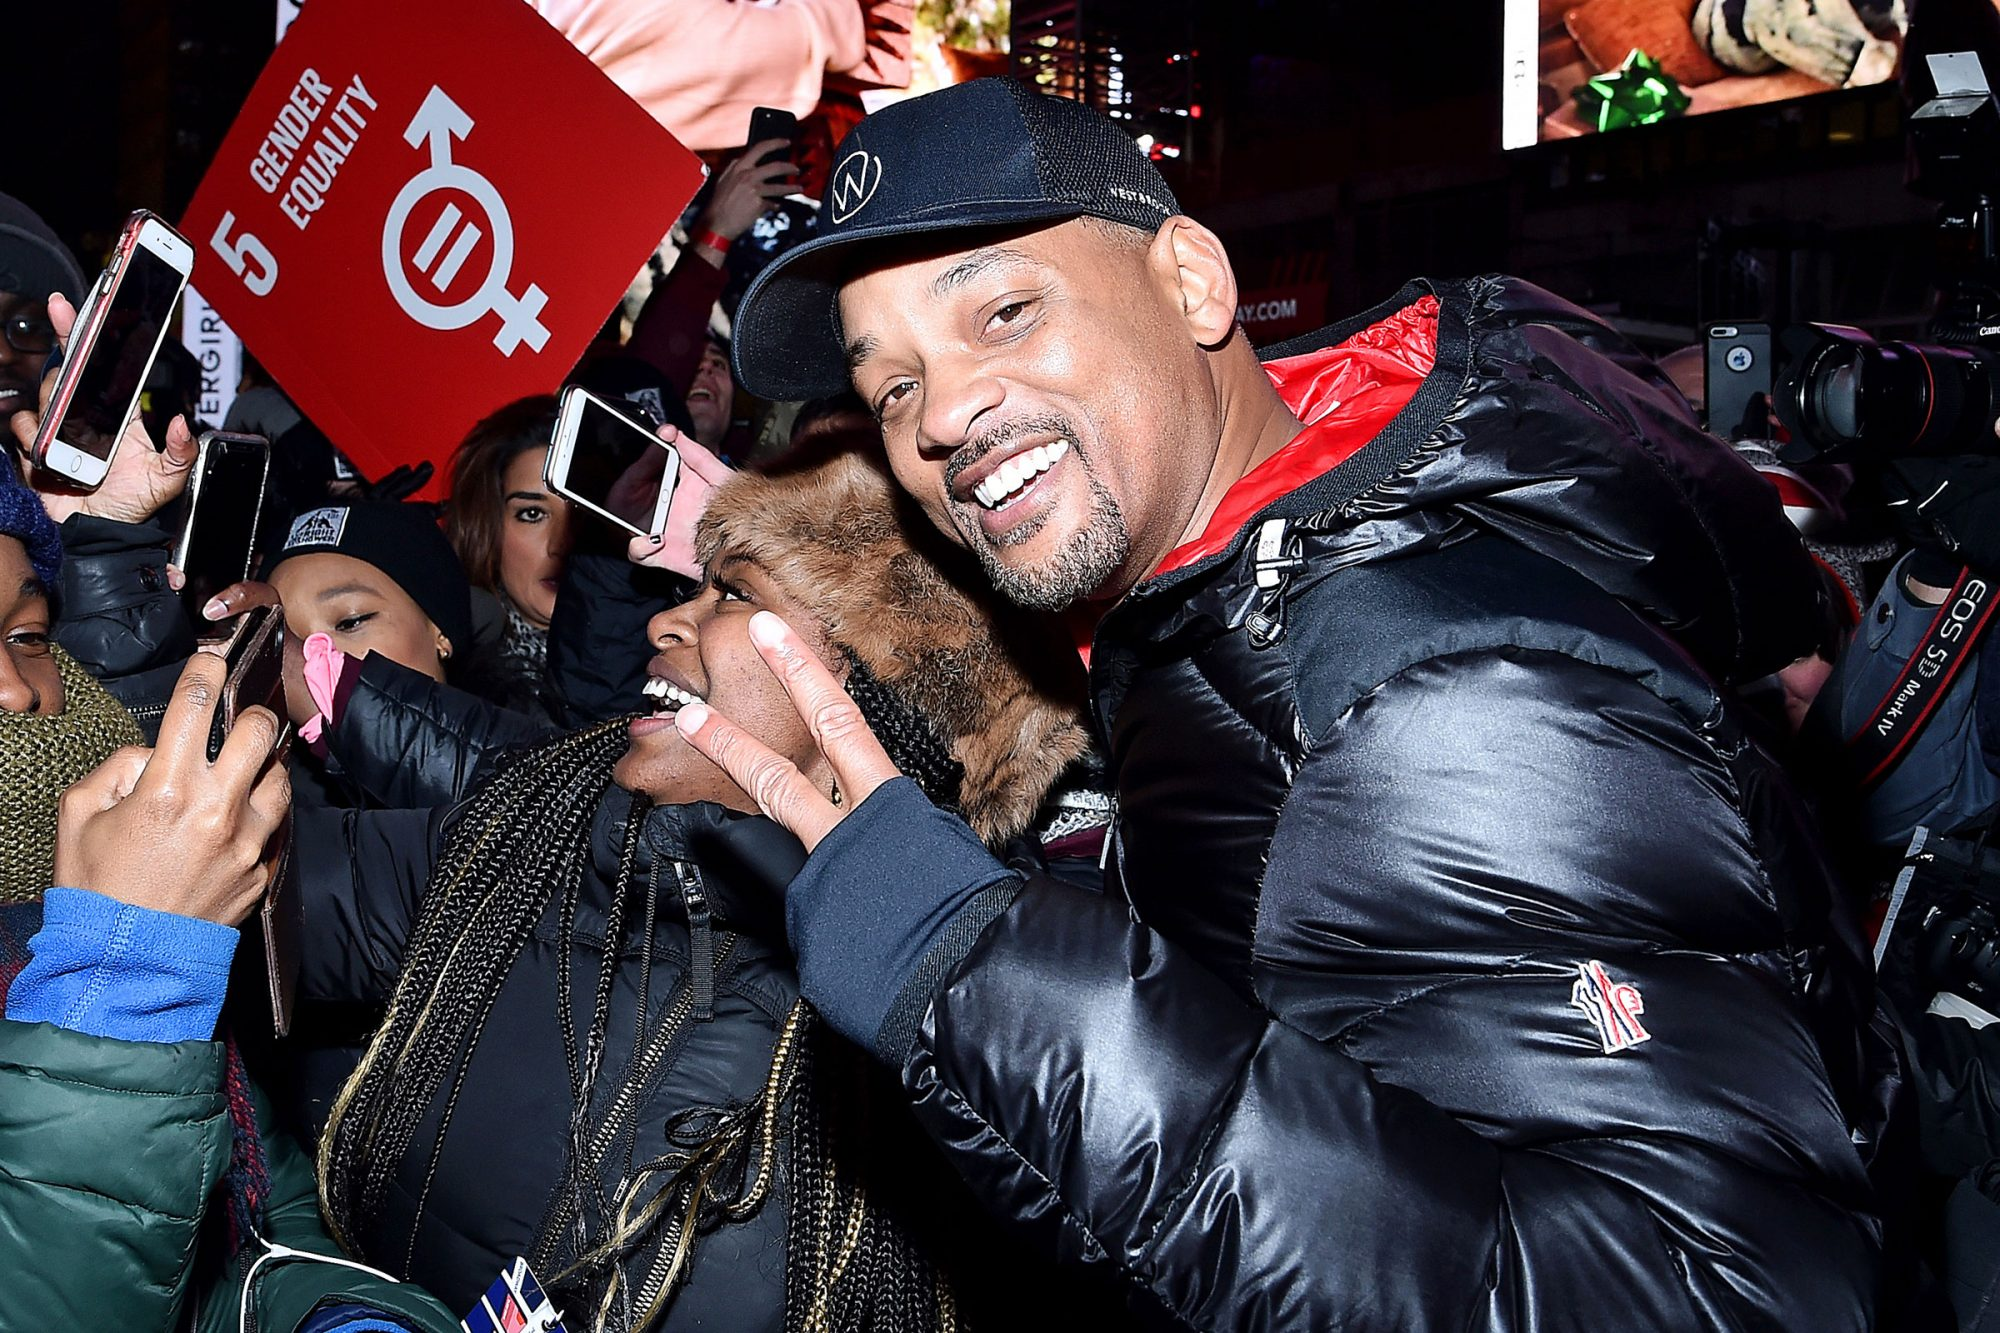 Will Smith takes selfies with participants during the The World's Big Sleep Out at Times Square on December 07, 2019 in New York City